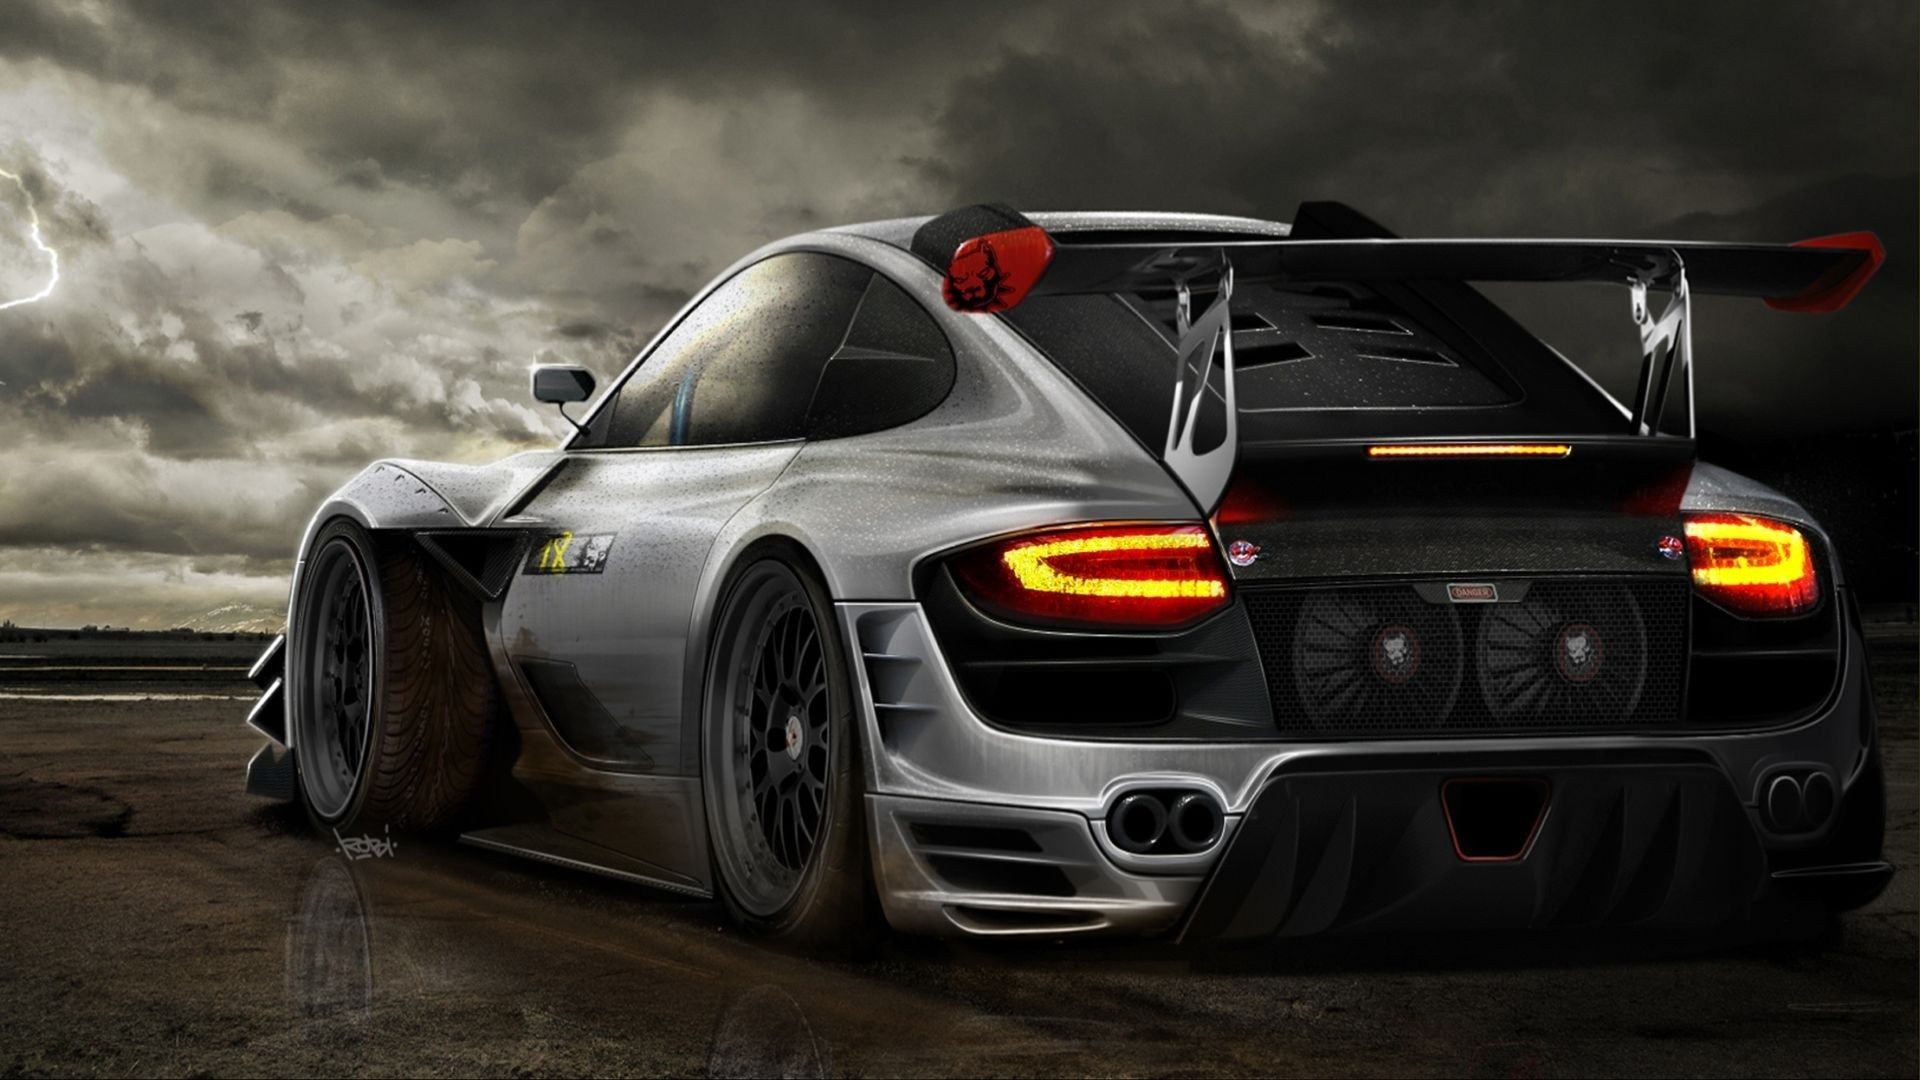 free cars tuning d fresh hd wallpapers download 19201080 cars tuning wallpapers 48